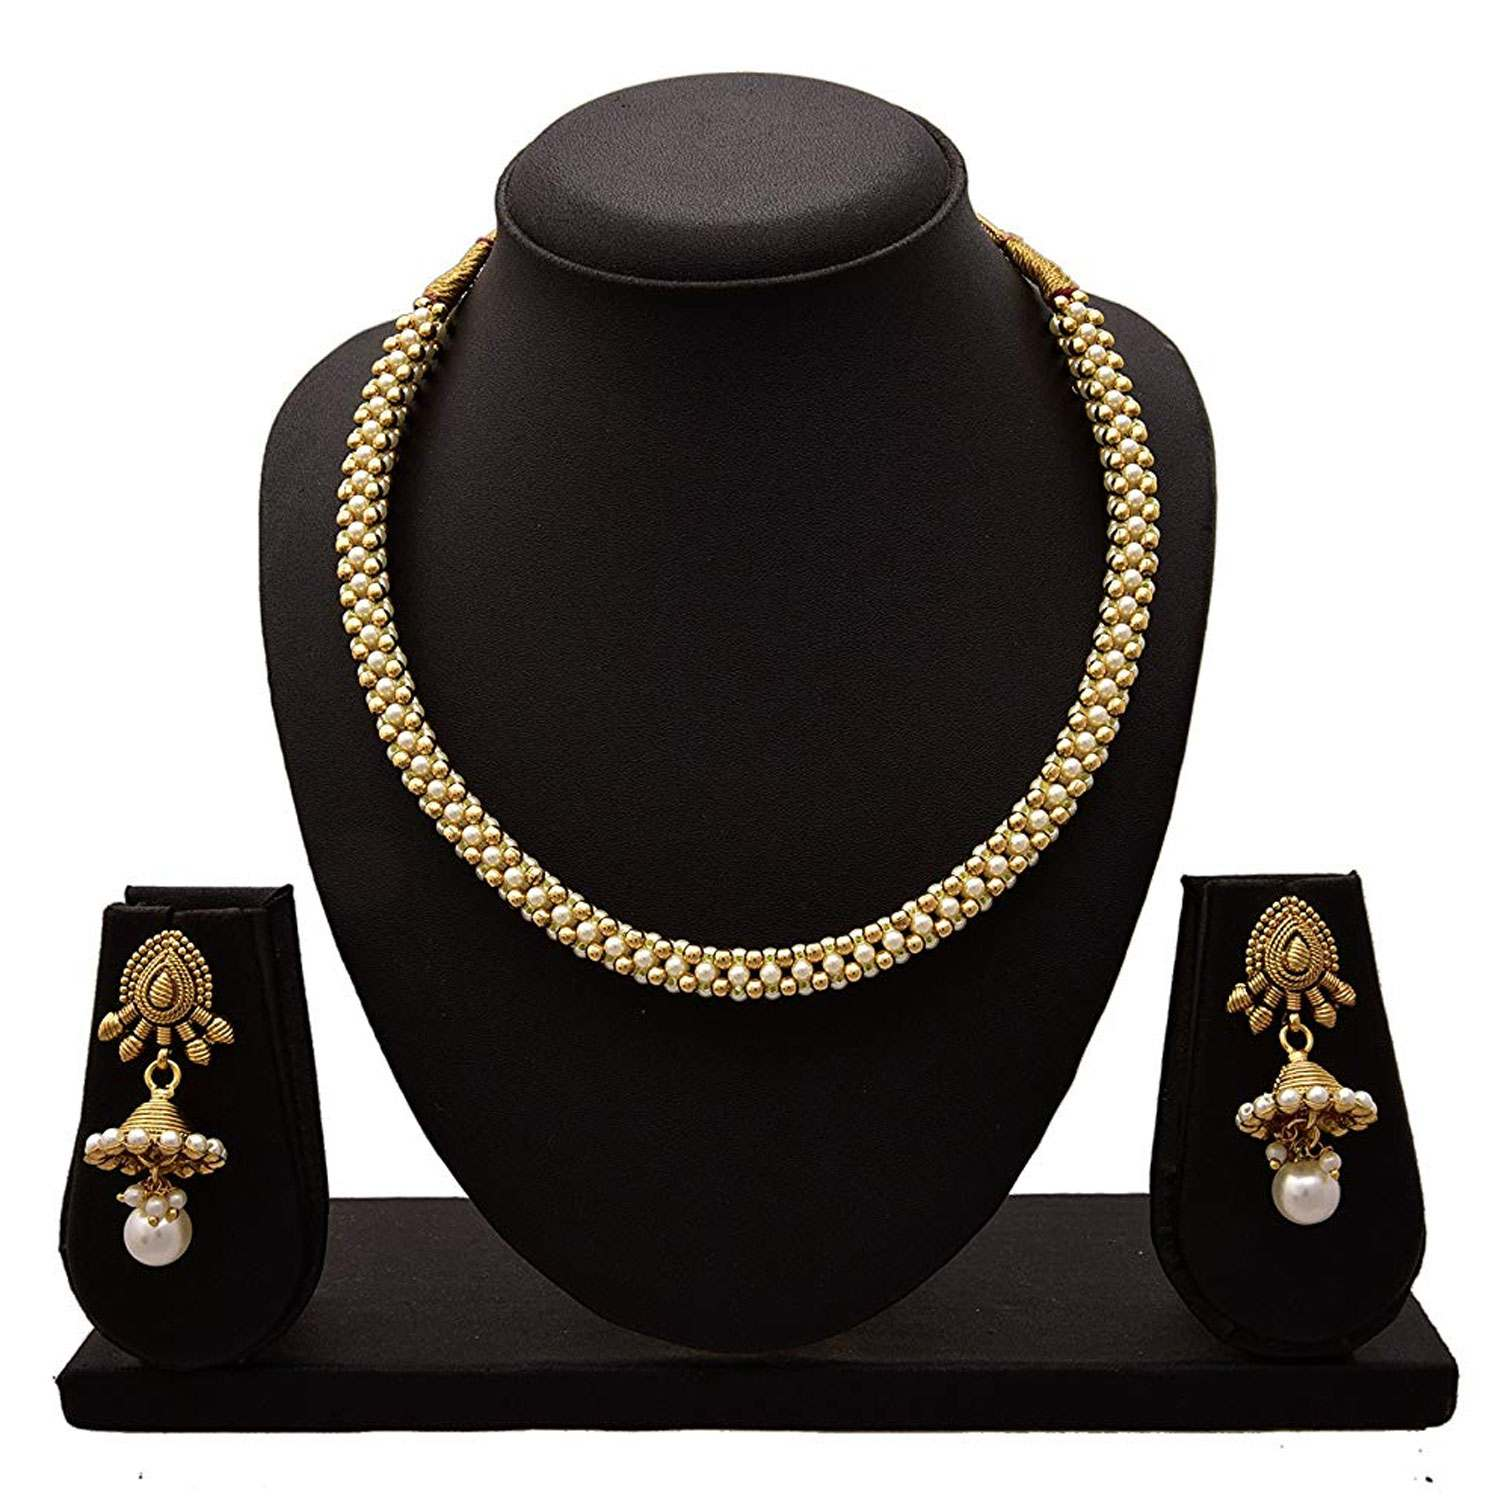 JFL - Traditional Ethnic One Gram Gold Plated Beads Pearl Designer Necklace Set With Jhumka for Women & Girls.